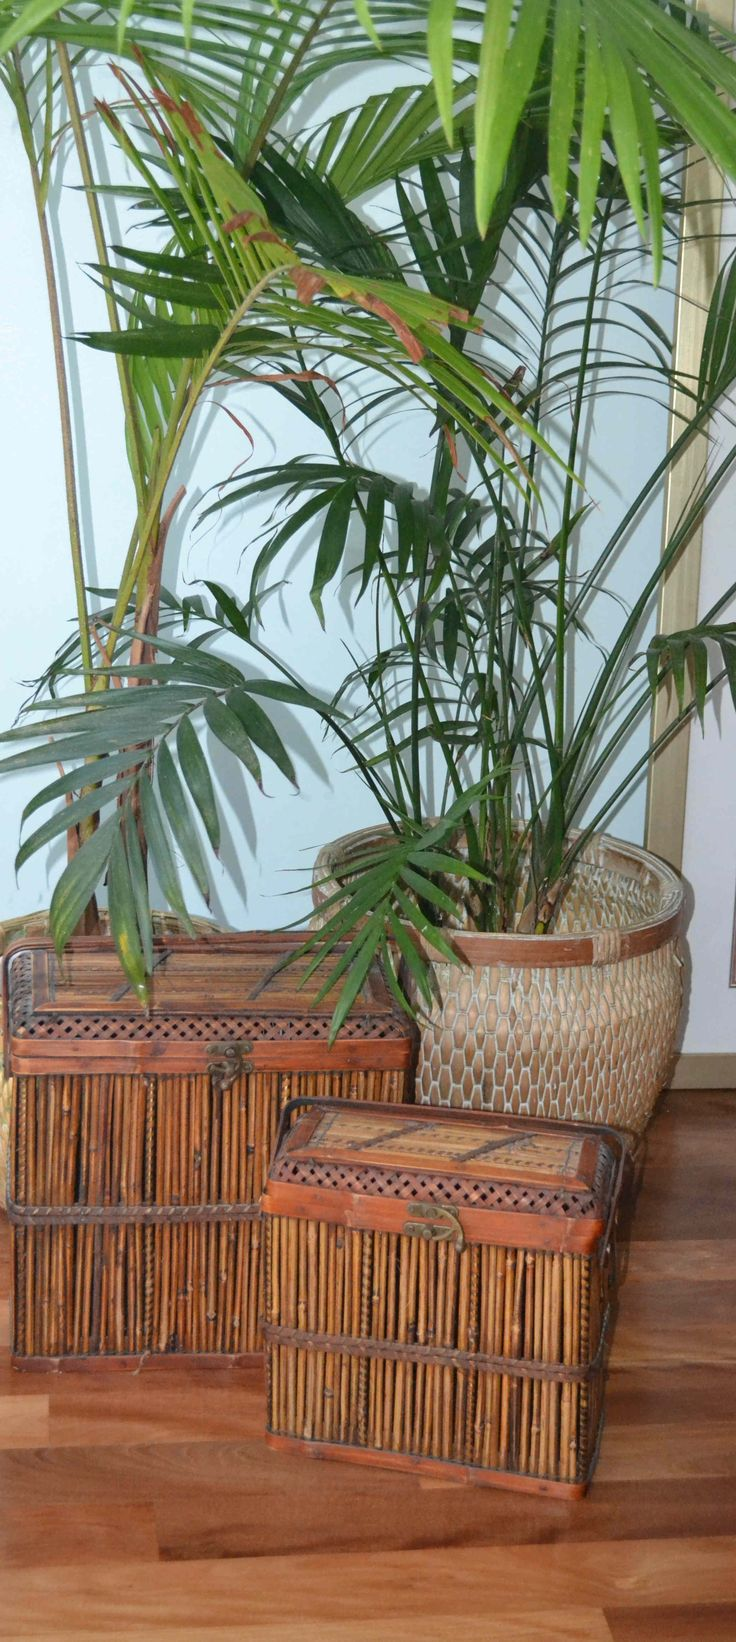 basket-ware and palms adds a tropical feel